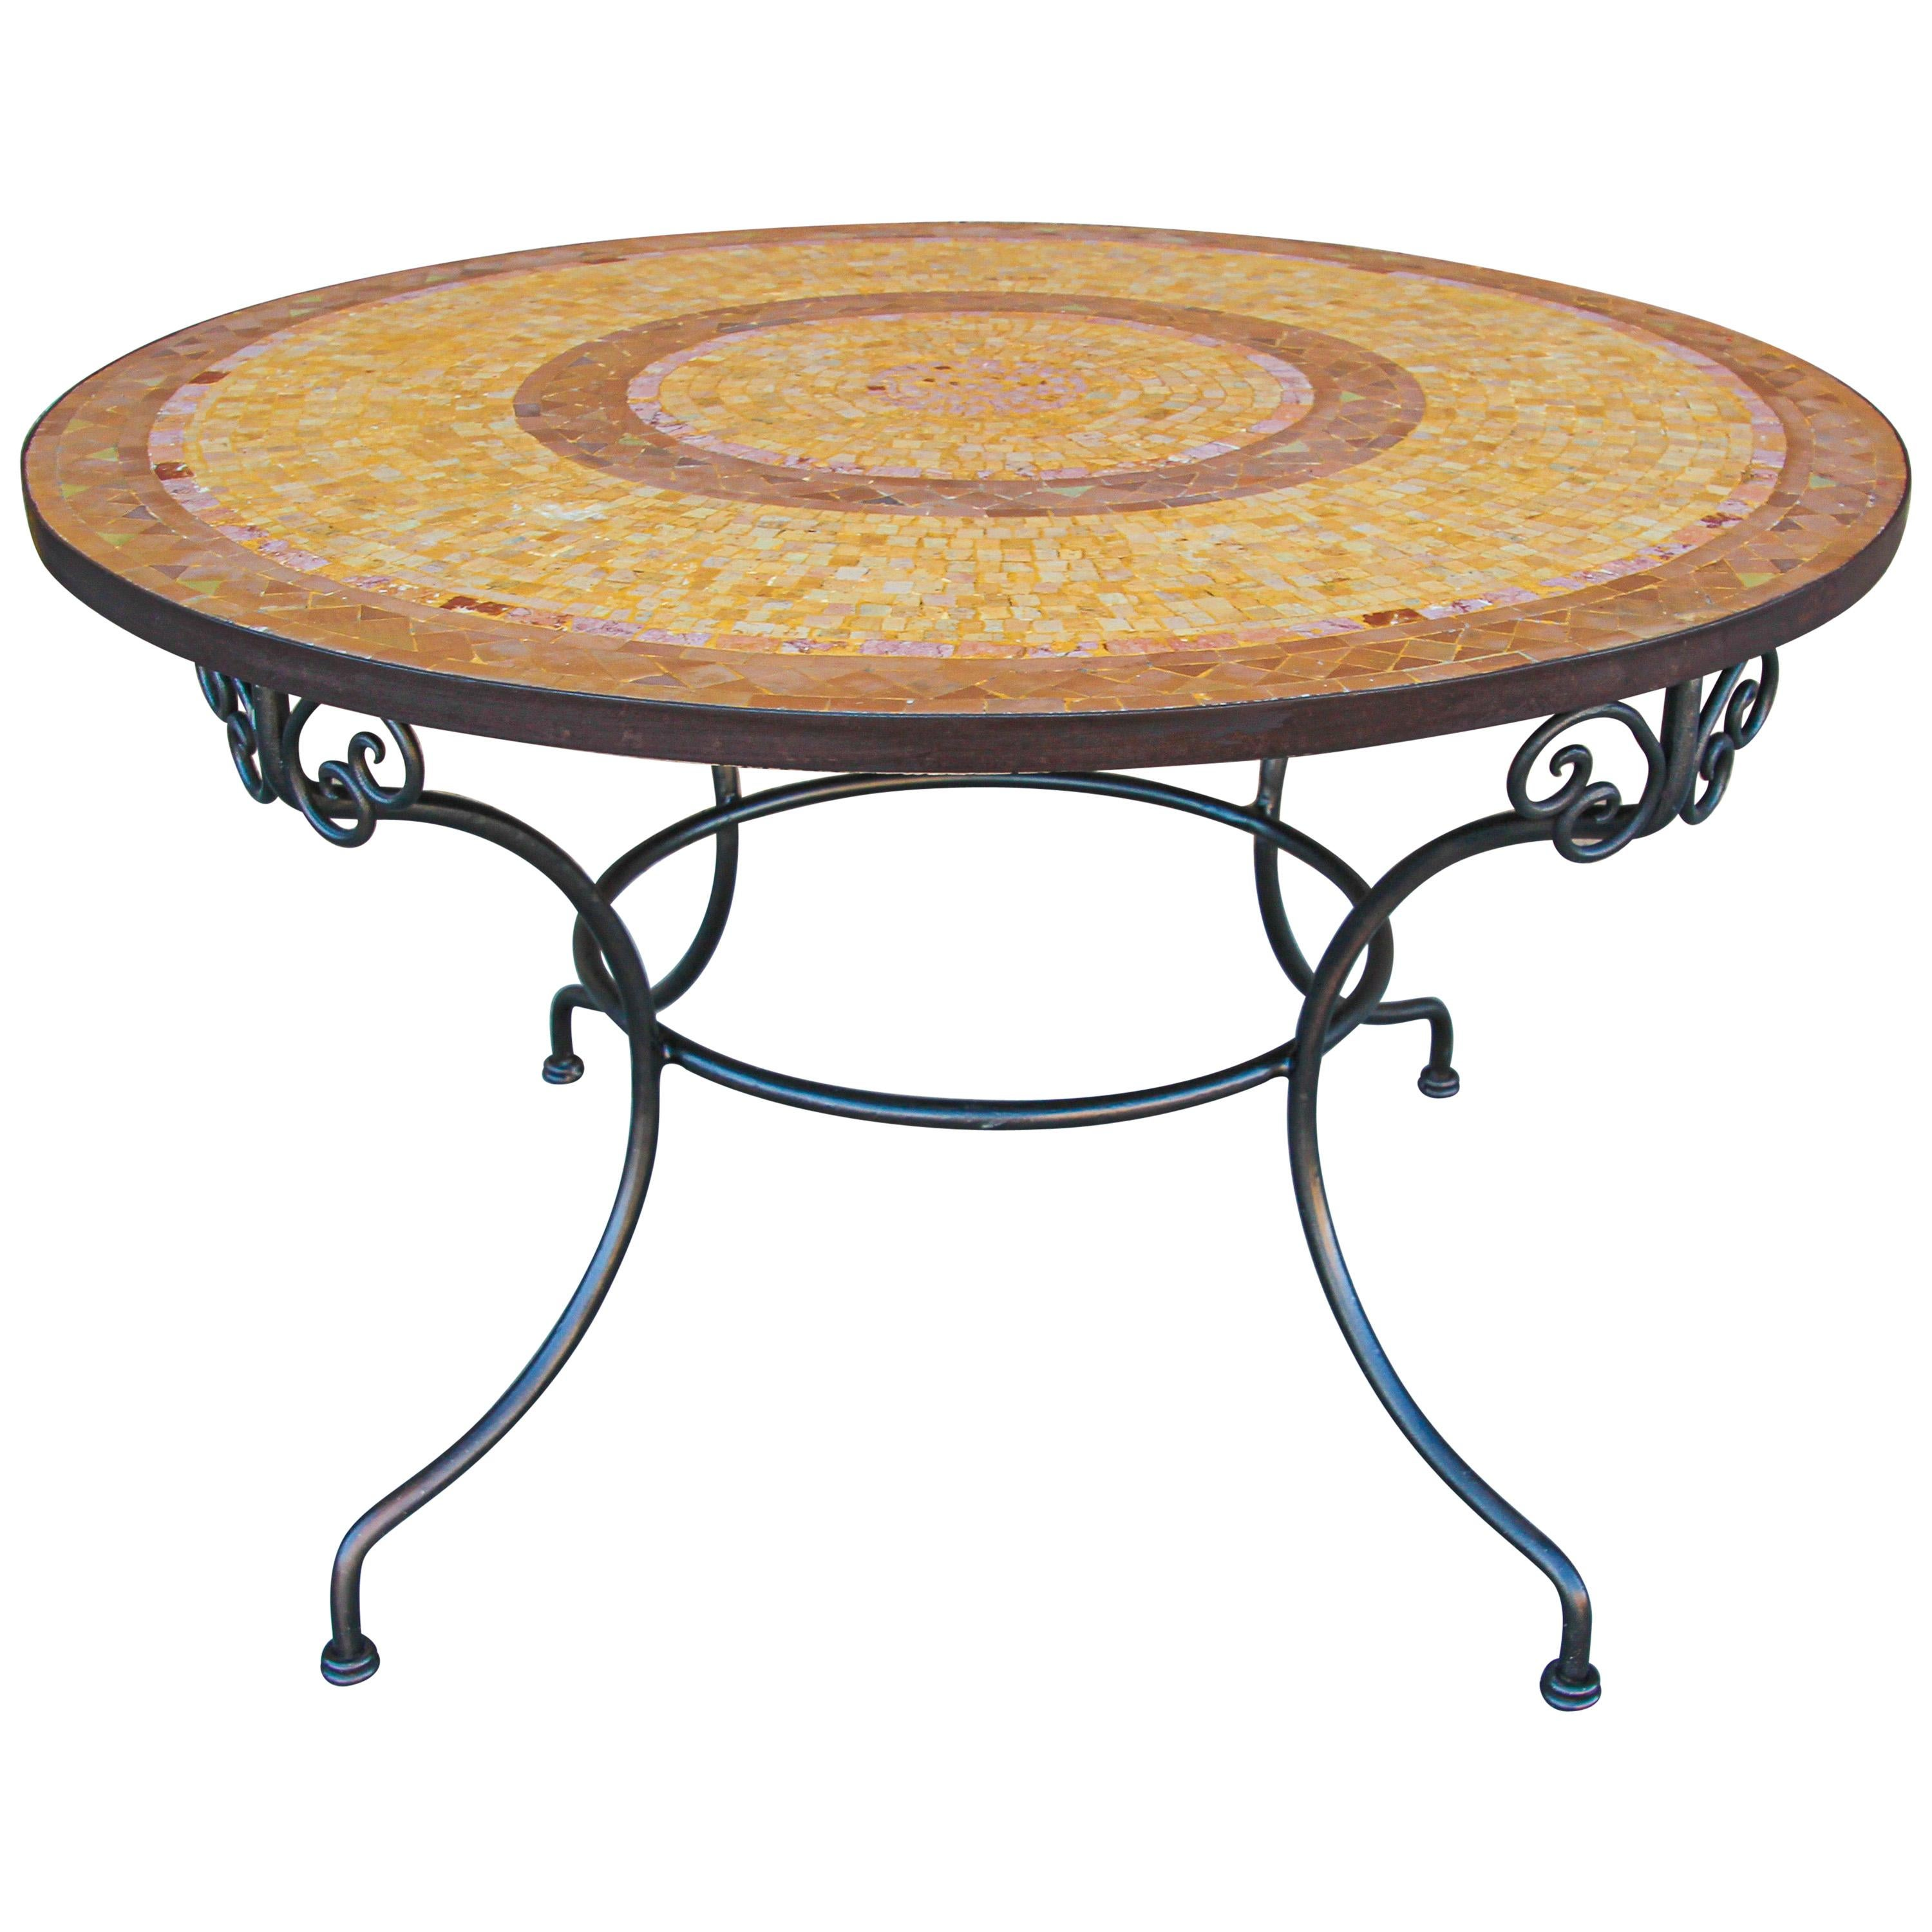 Moroccan Mosaic Stone Table Indoor or Outdoor